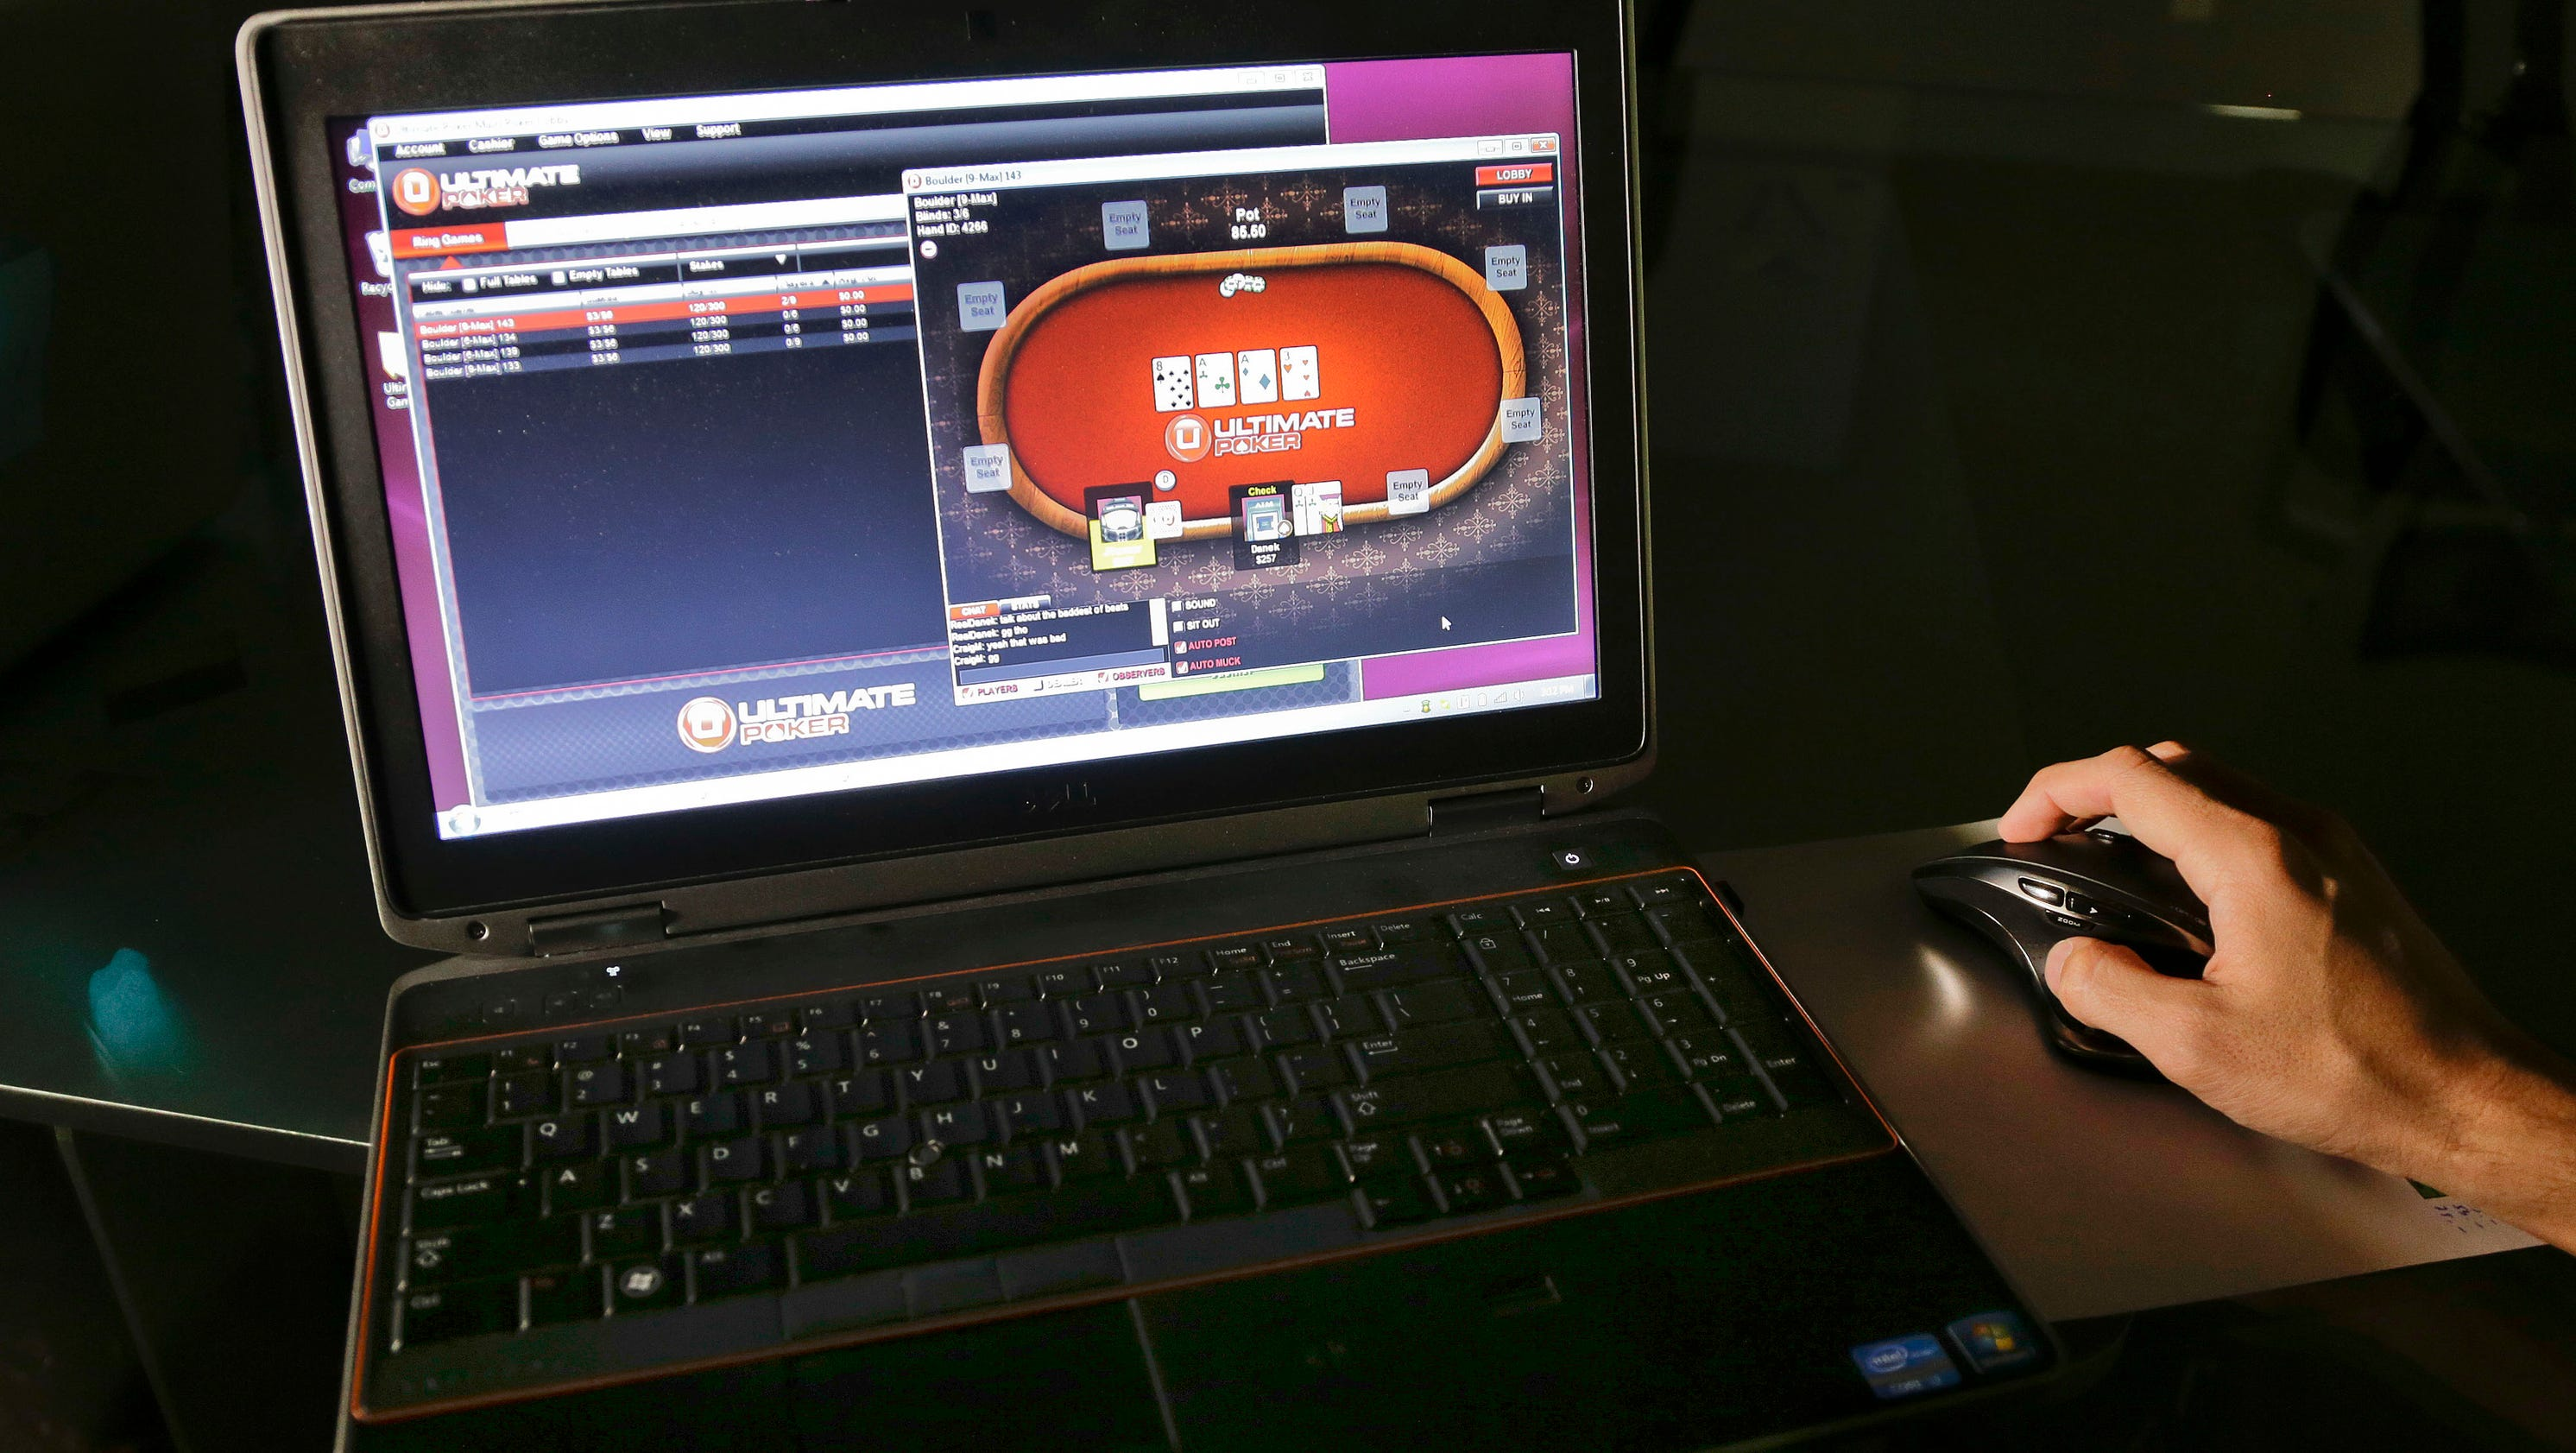 Online gambling has ruined my life